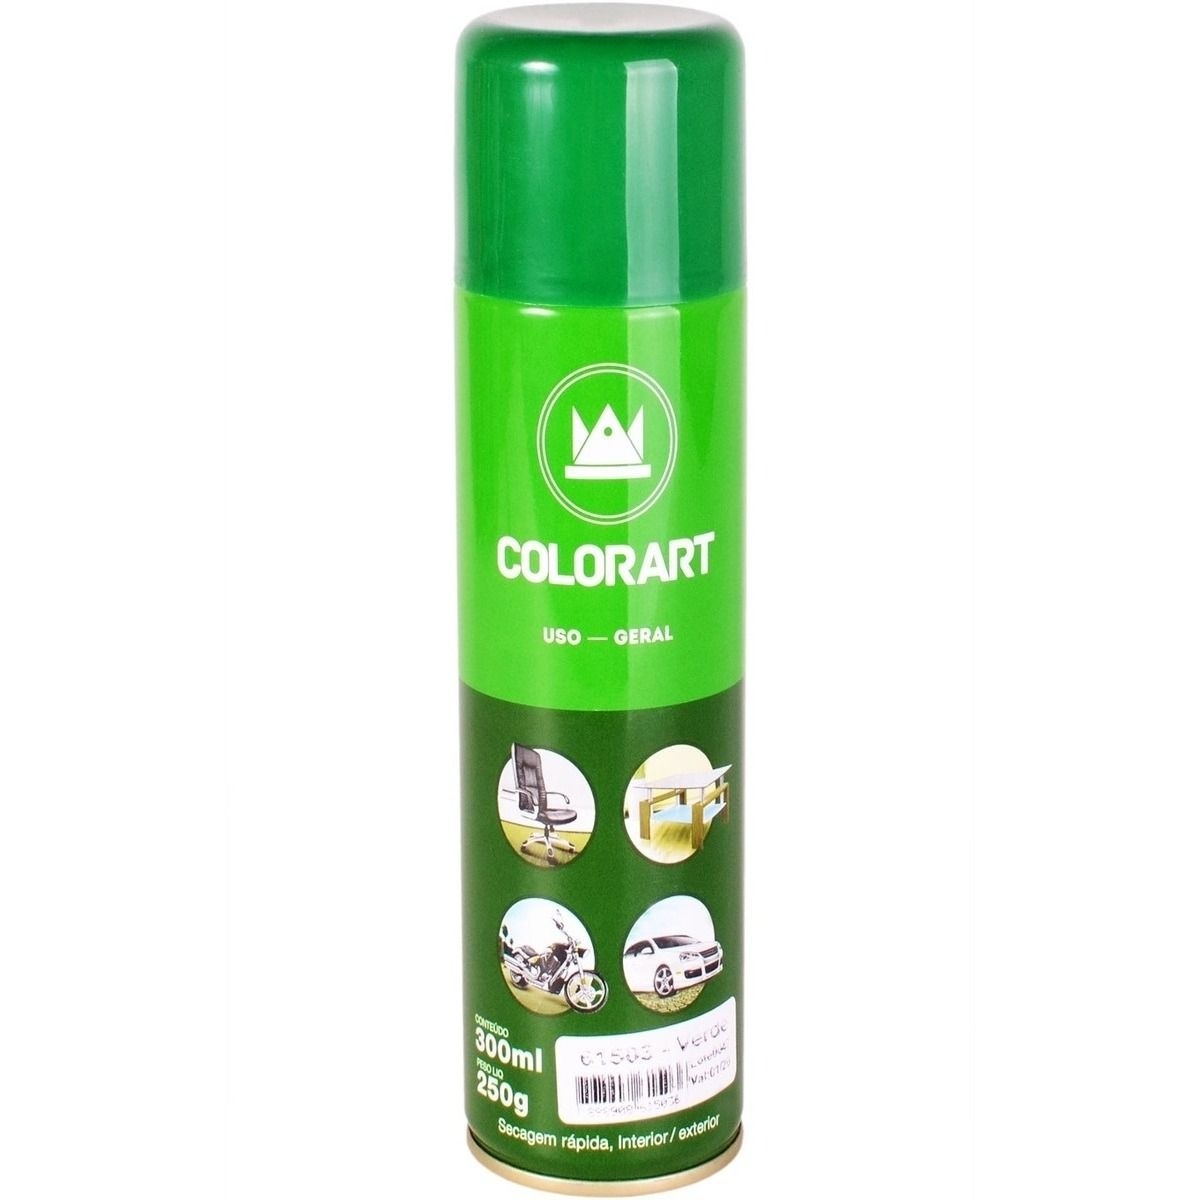 Tinta Spray Colorart Uso Geral Verde